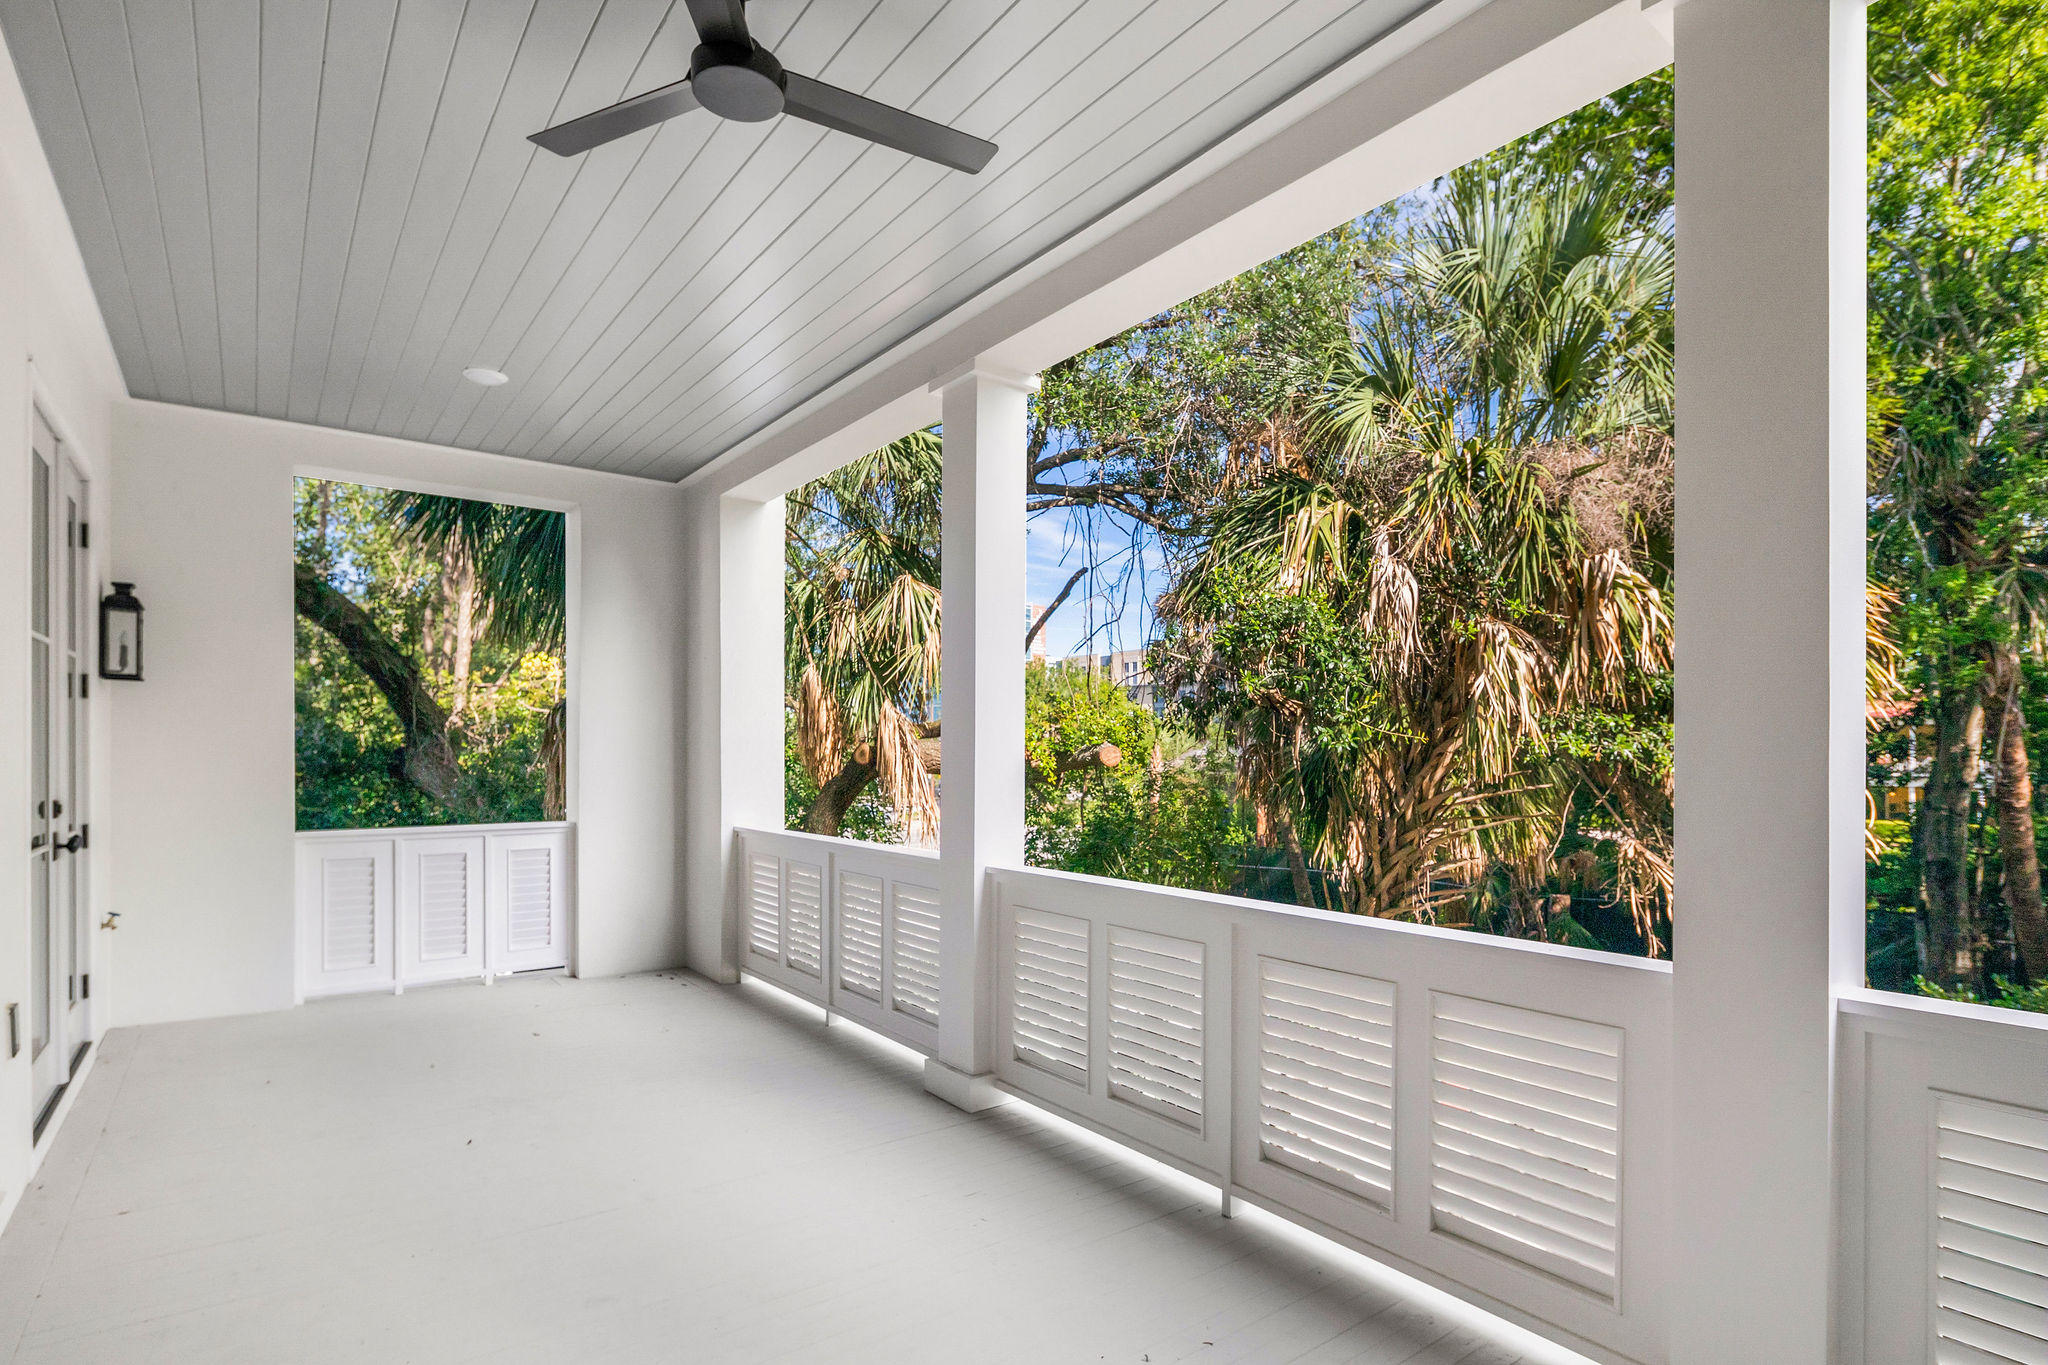 Harleston Village Condos For Sale - 61 B Barre, Charleston, SC - 31